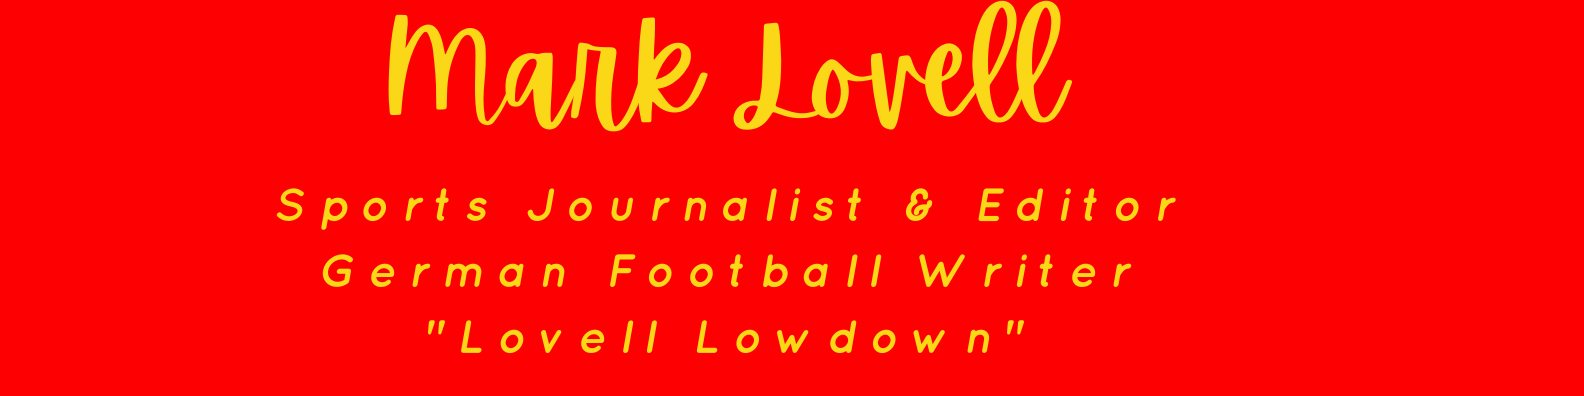 Mark Lovell - German Football Writer / UEFA Accredited Journalist